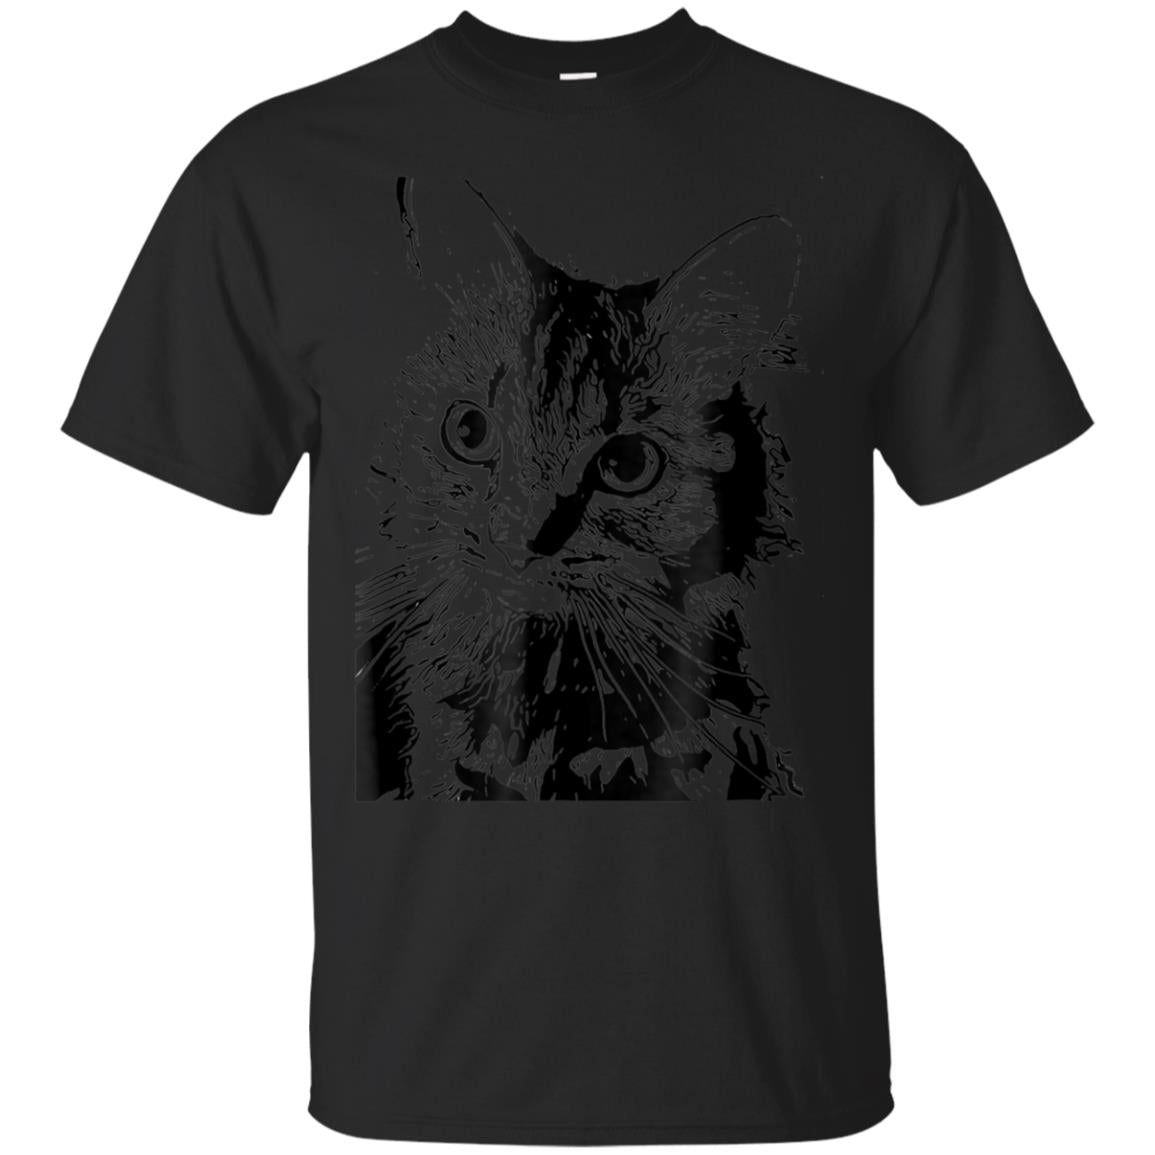 Black graphic of a kitten 99promocode